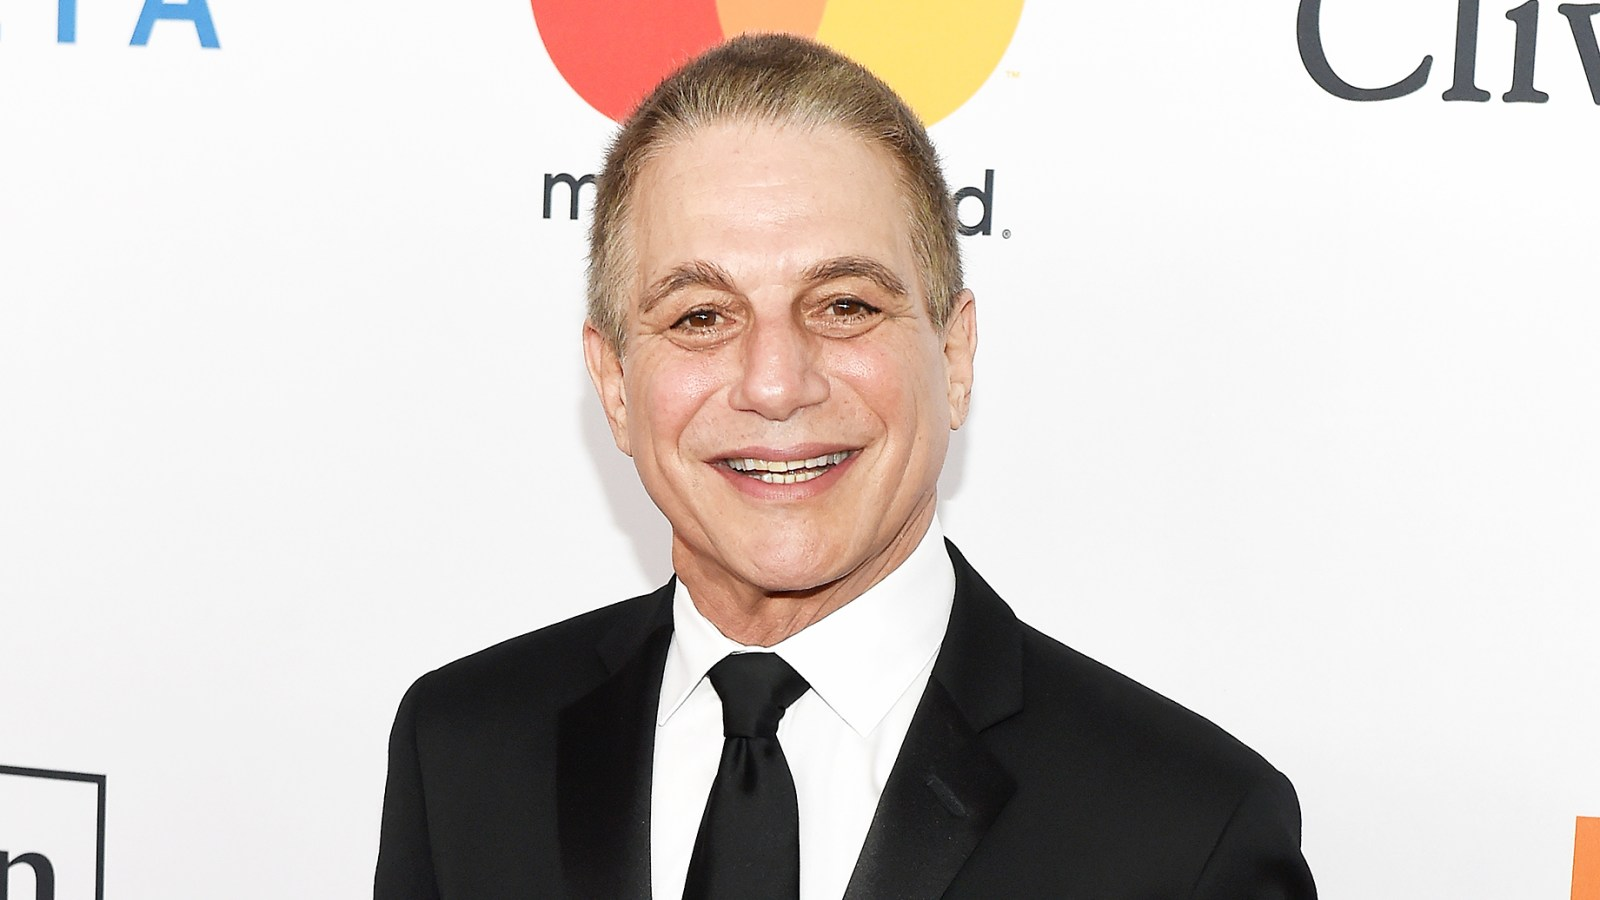 Tony Danza Reveals What Hollywood Adventure Changed His Life